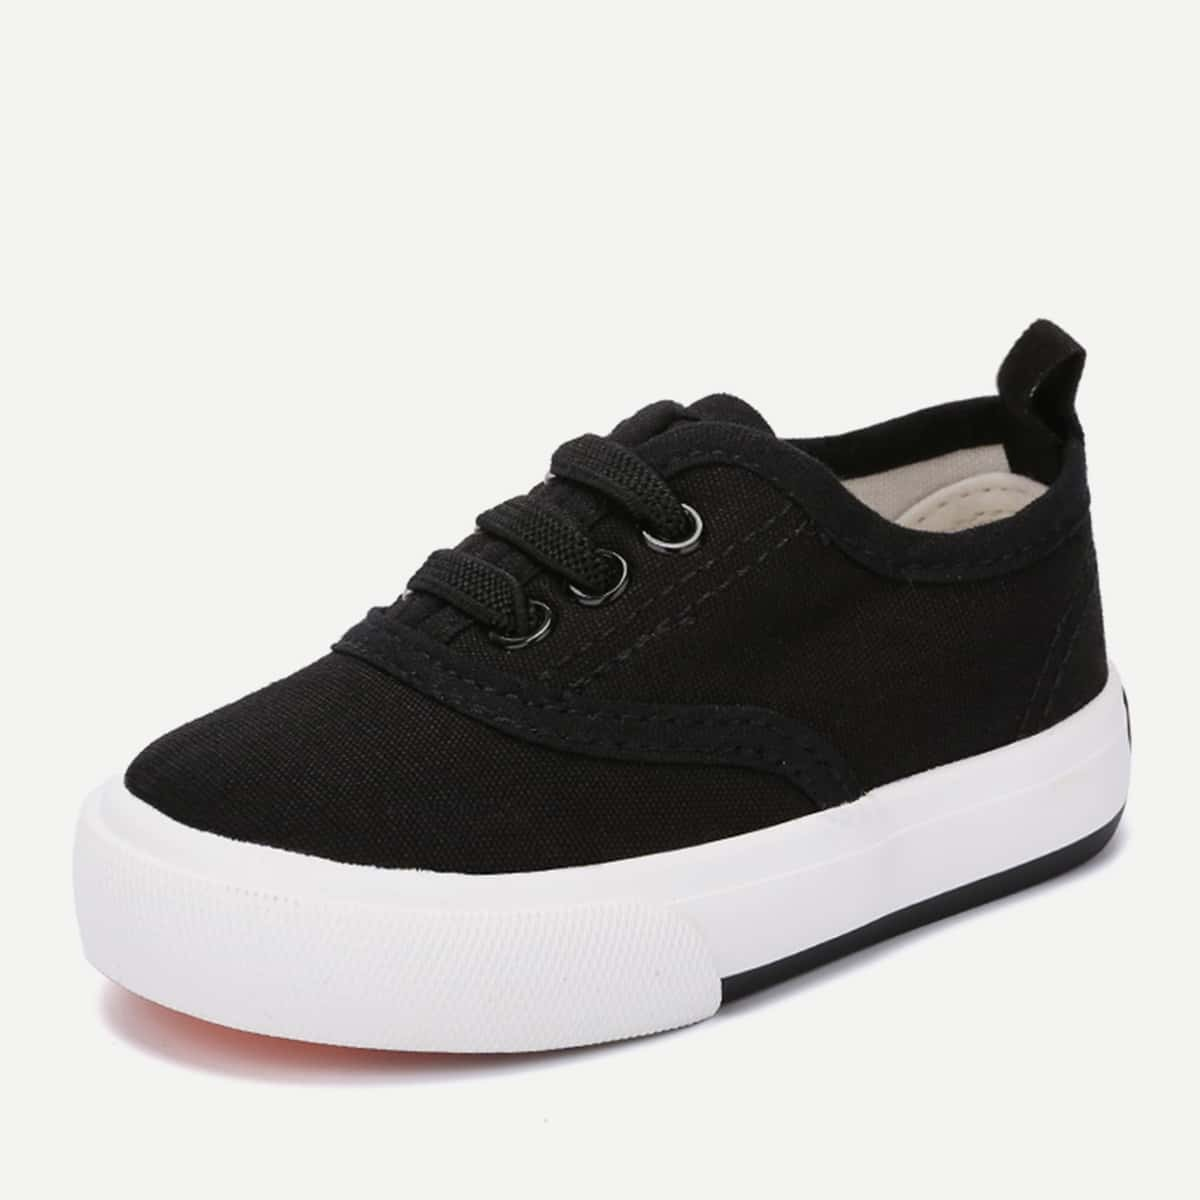 Baby stiksels sneakers